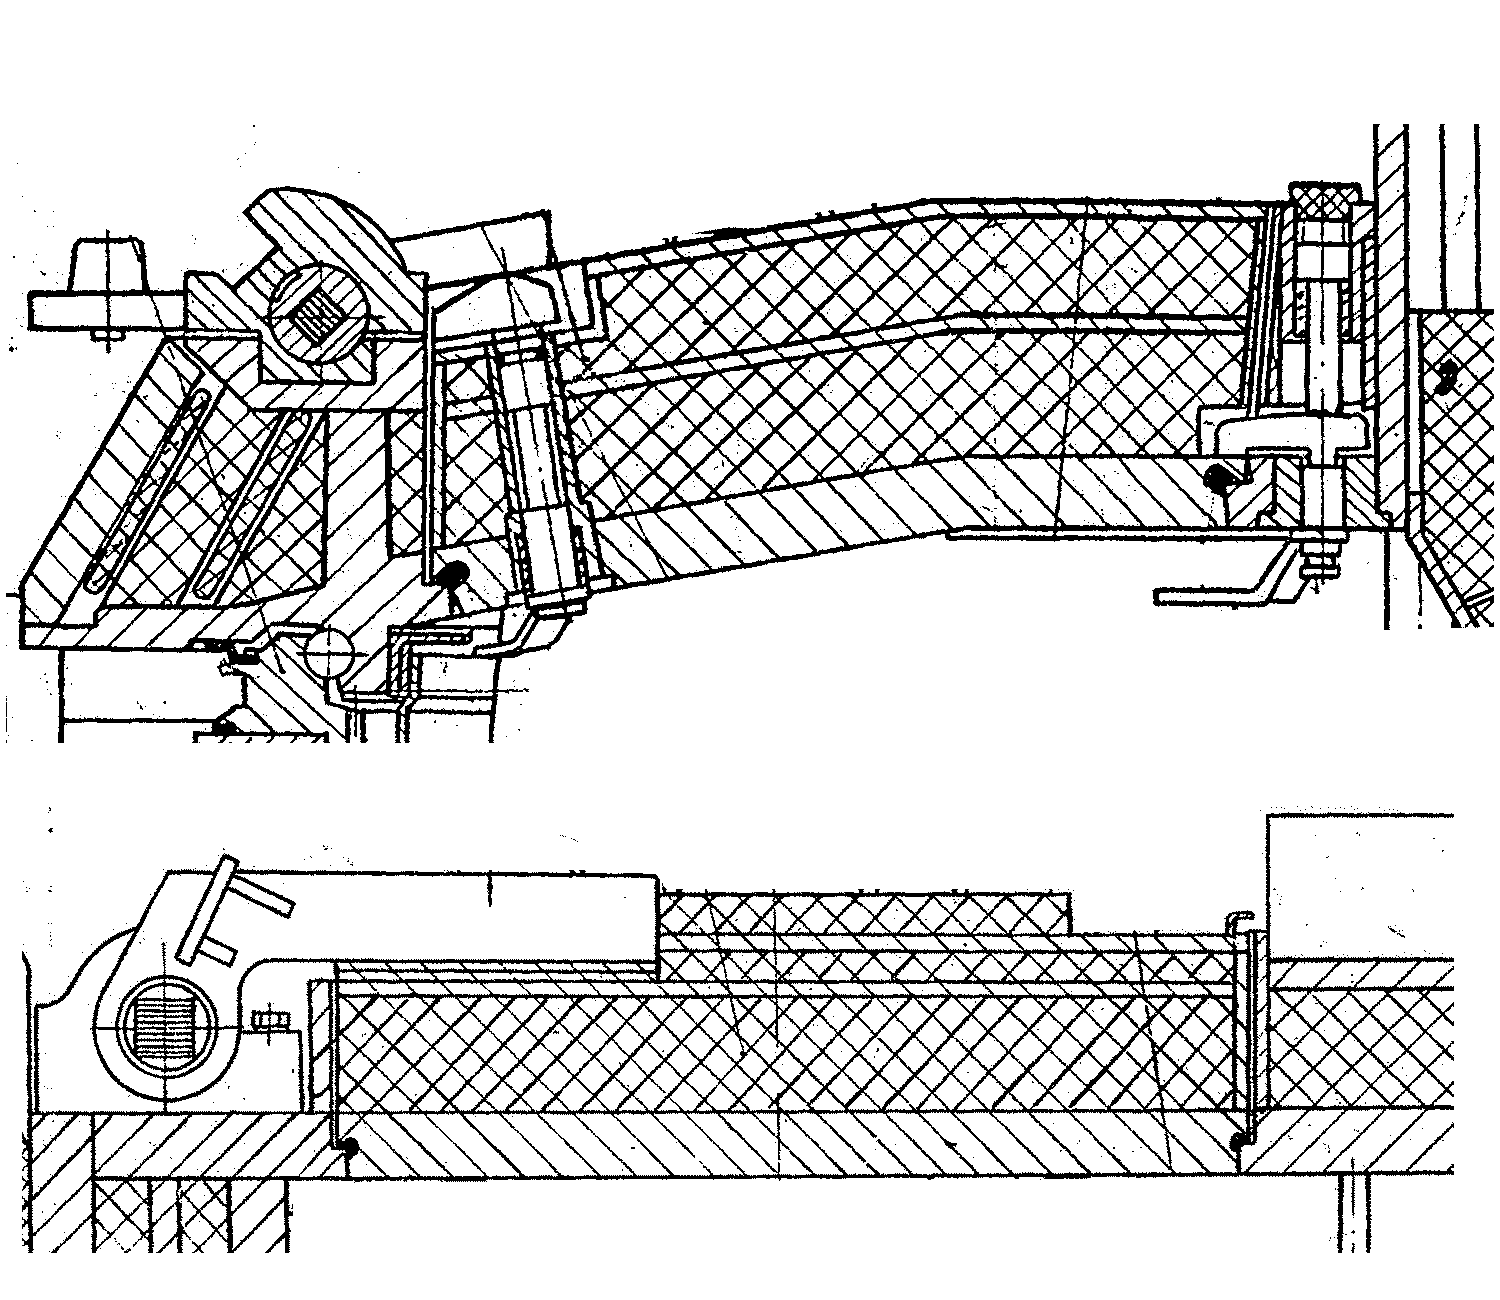 Best Armored Mbt In Terms Of Frontal Hull And Turret Armor Page 4 Merkava Tank Schematic Obyekt 477a Molot Kharkiv Morozov Design Bureau Designed During The End Cold War Thing I Circled First Picture Is Drivers